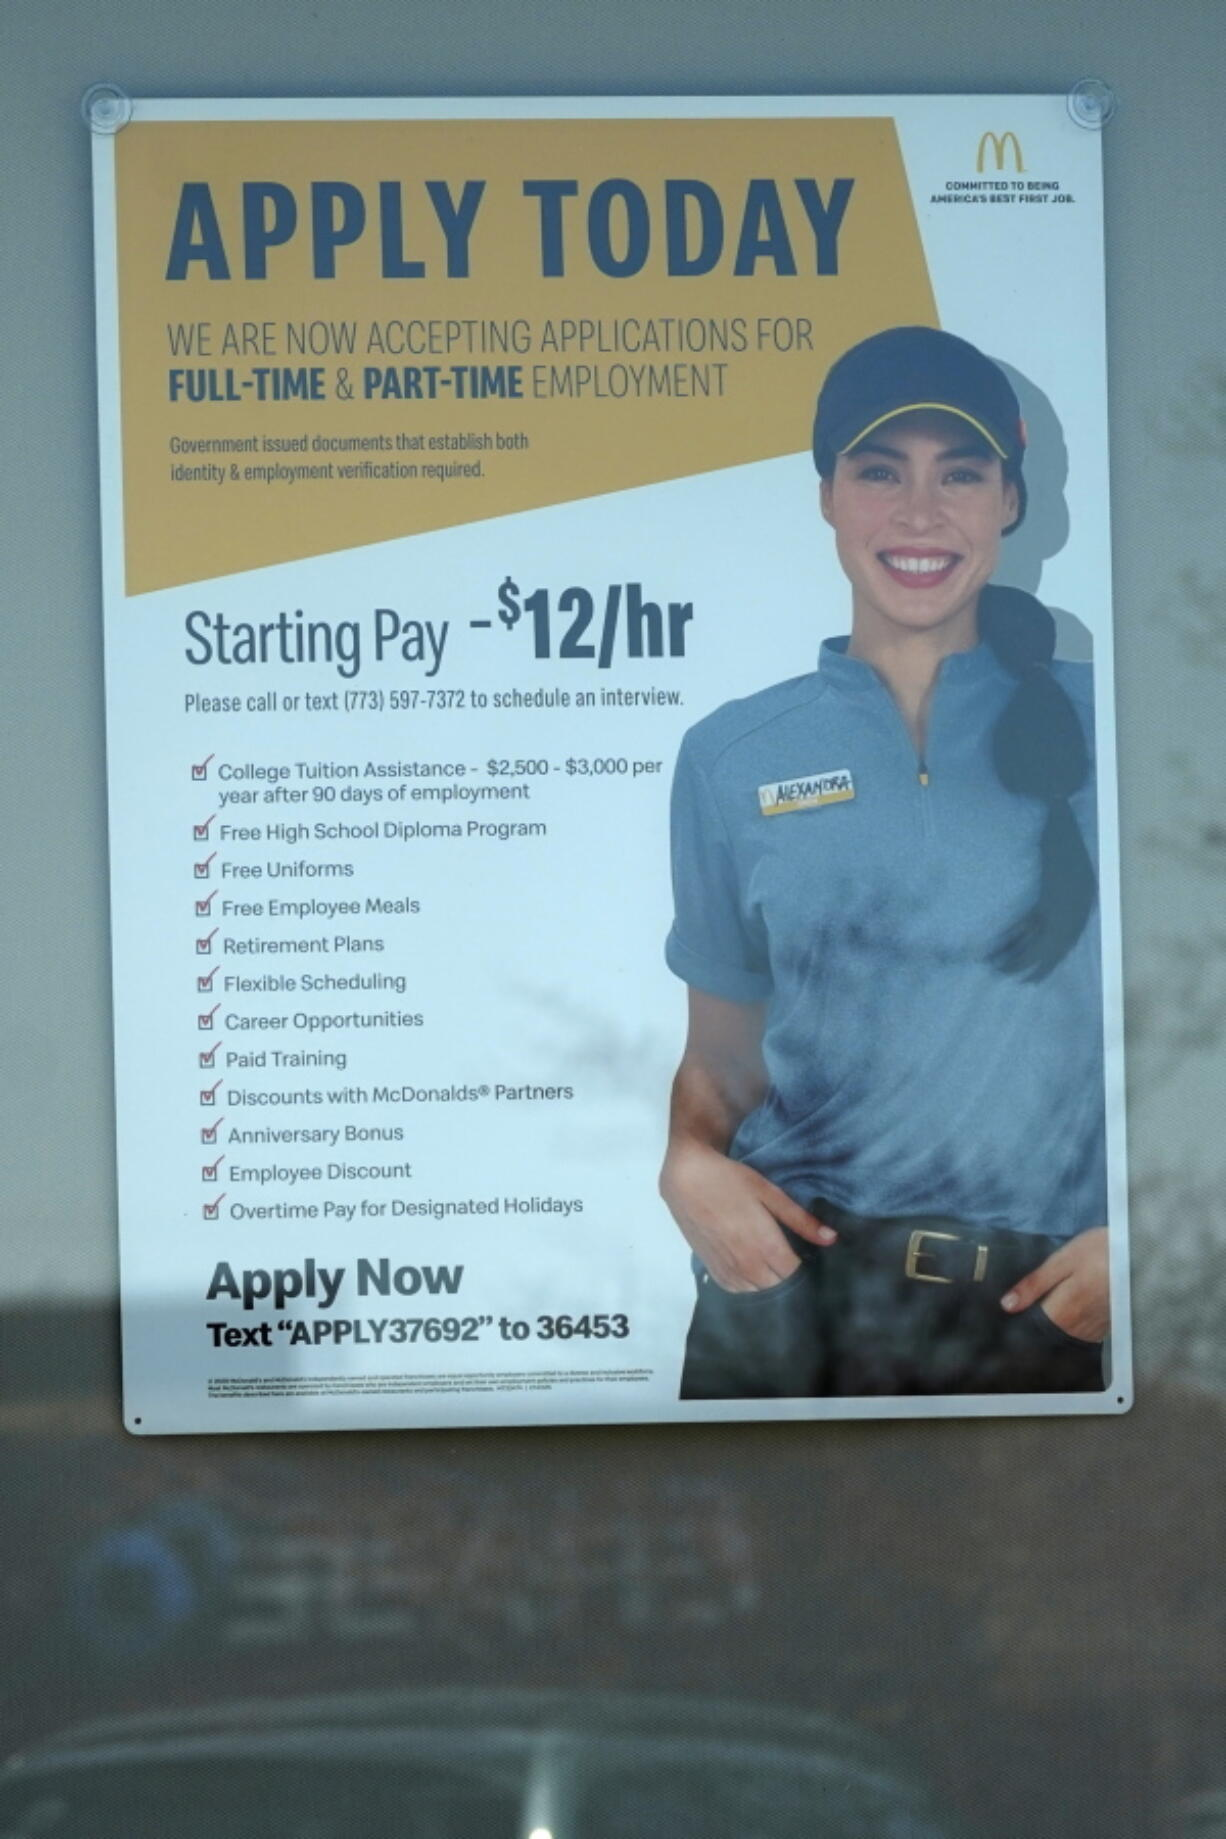 A hiring information sign is displayed at a fast food restaurant in Des Plaines, Ill., Friday, April 2, 2021. America's employers unleashed a burst of hiring in March, adding 916,000 jobs in a sign that a sustained recovery from the pandemic recession is taking hold as vaccinations accelerate, stimulus checks flow through the economy and businesses increasingly reopen. (AP Photo/Nam Y. Huh) (nam y.